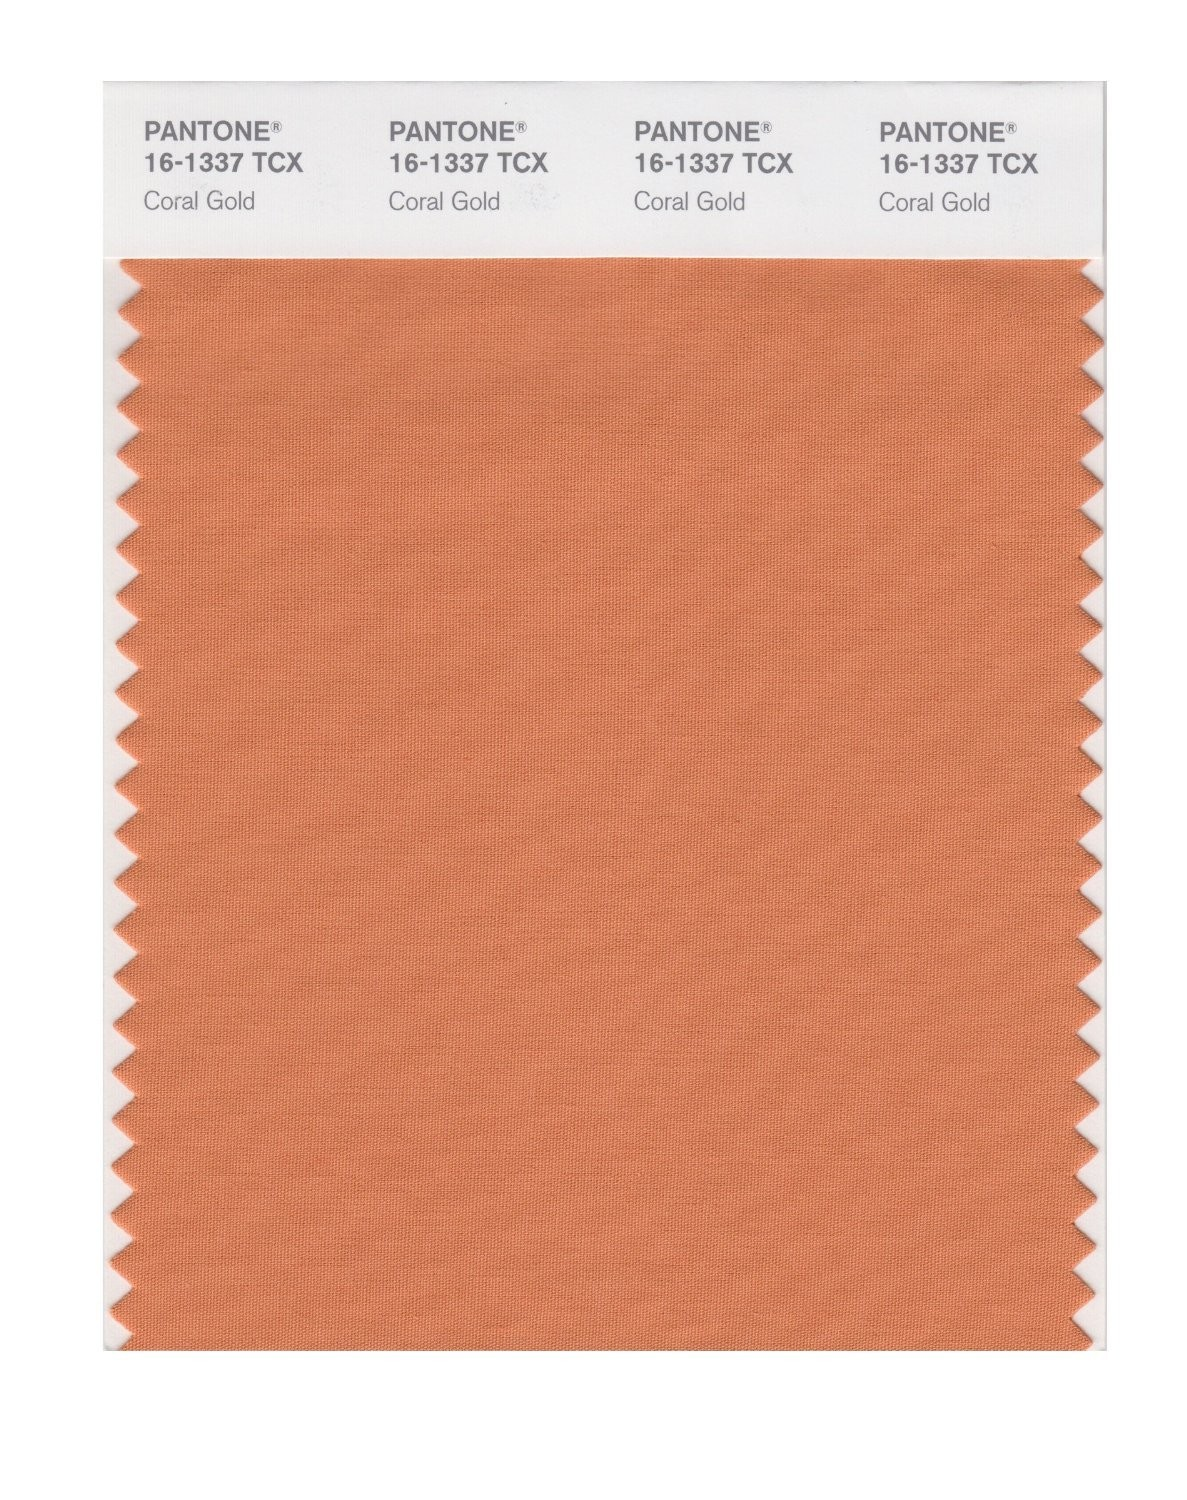 Pantone 16-1337 TCX Swatch Card Coral Gold